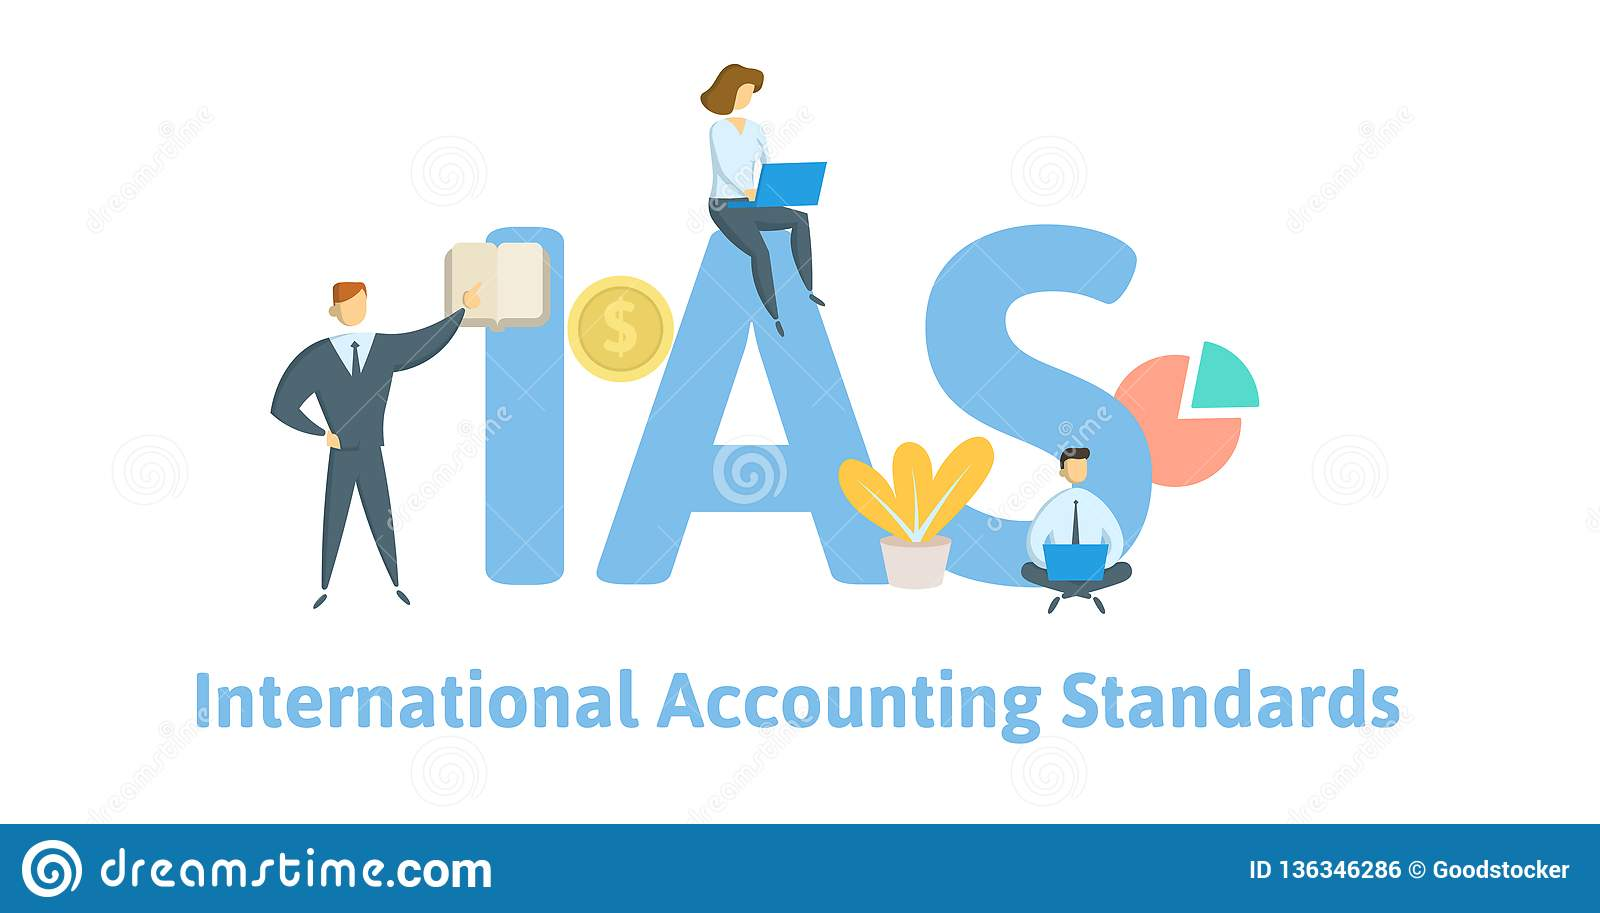 IAS, International Accounting Standards  Concept With